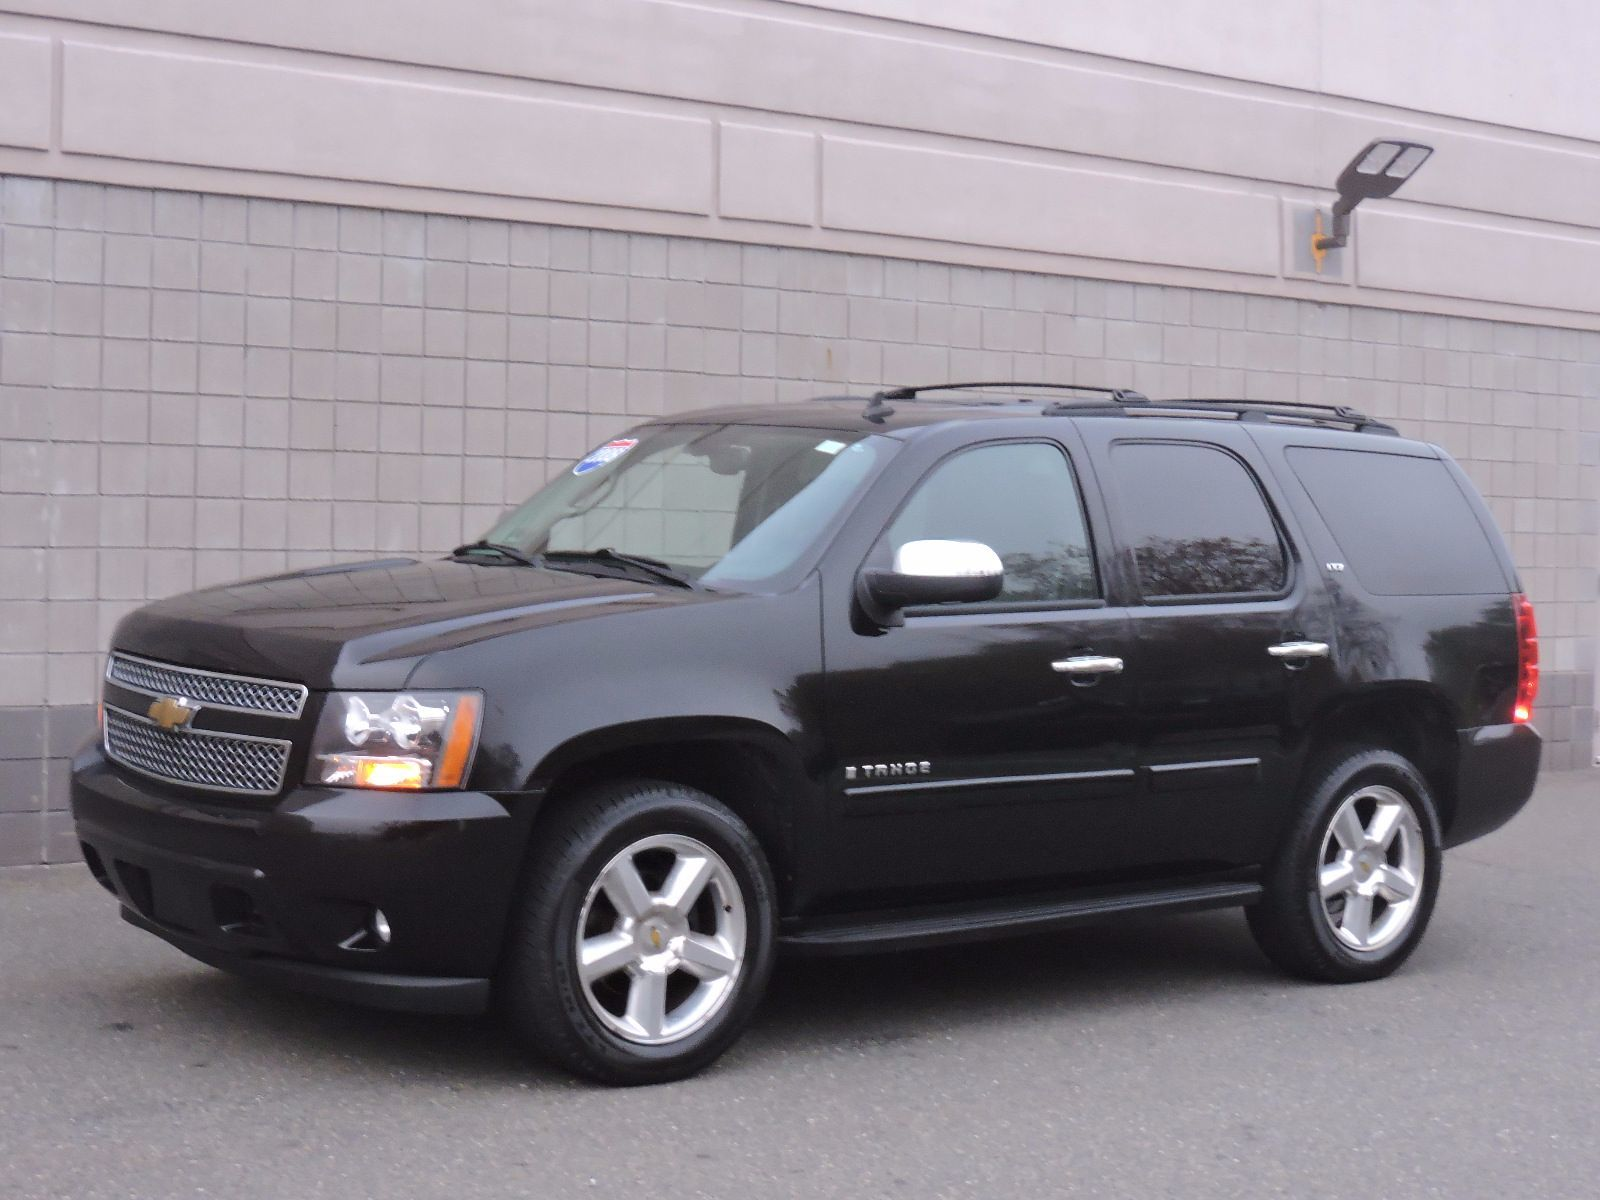 Used 2008 Chevrolet Tahoe Ltz At Auto House Usa Saugus